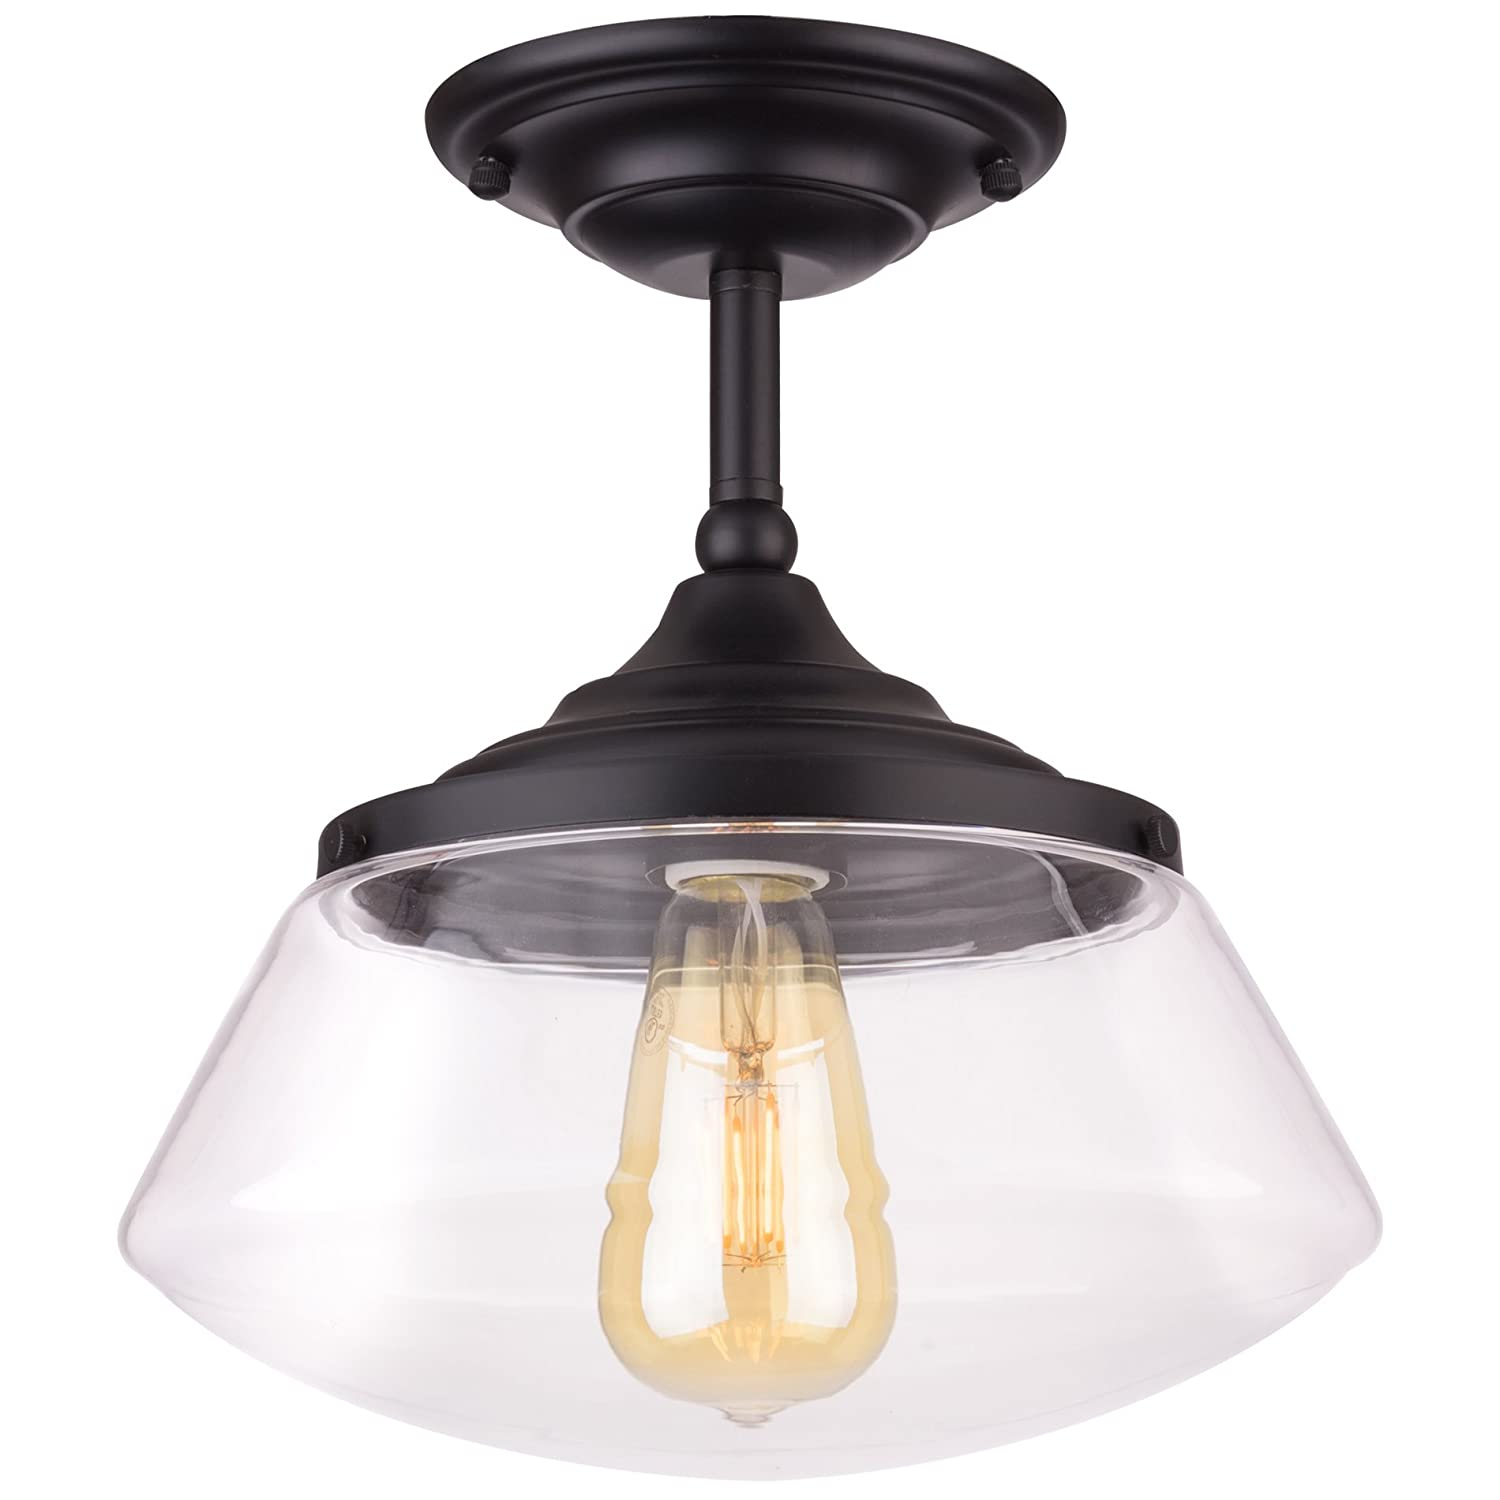 "Kira Home Summit 10"" Industrial Semi Flush Mount Ceiling Light + Schoolhouse Glass Shade, Matte Black Finish"